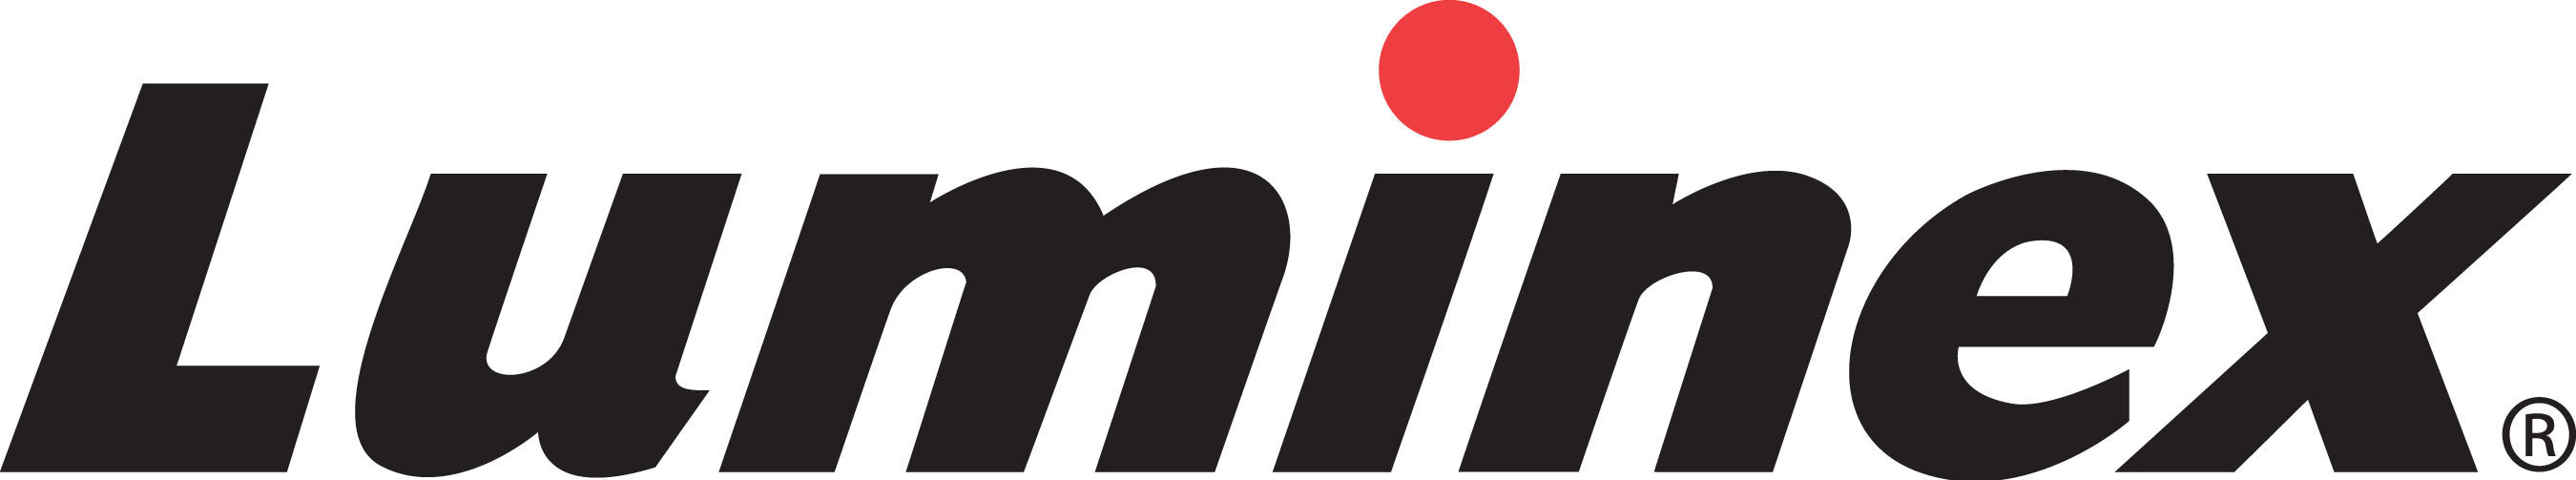 Luminex logo.